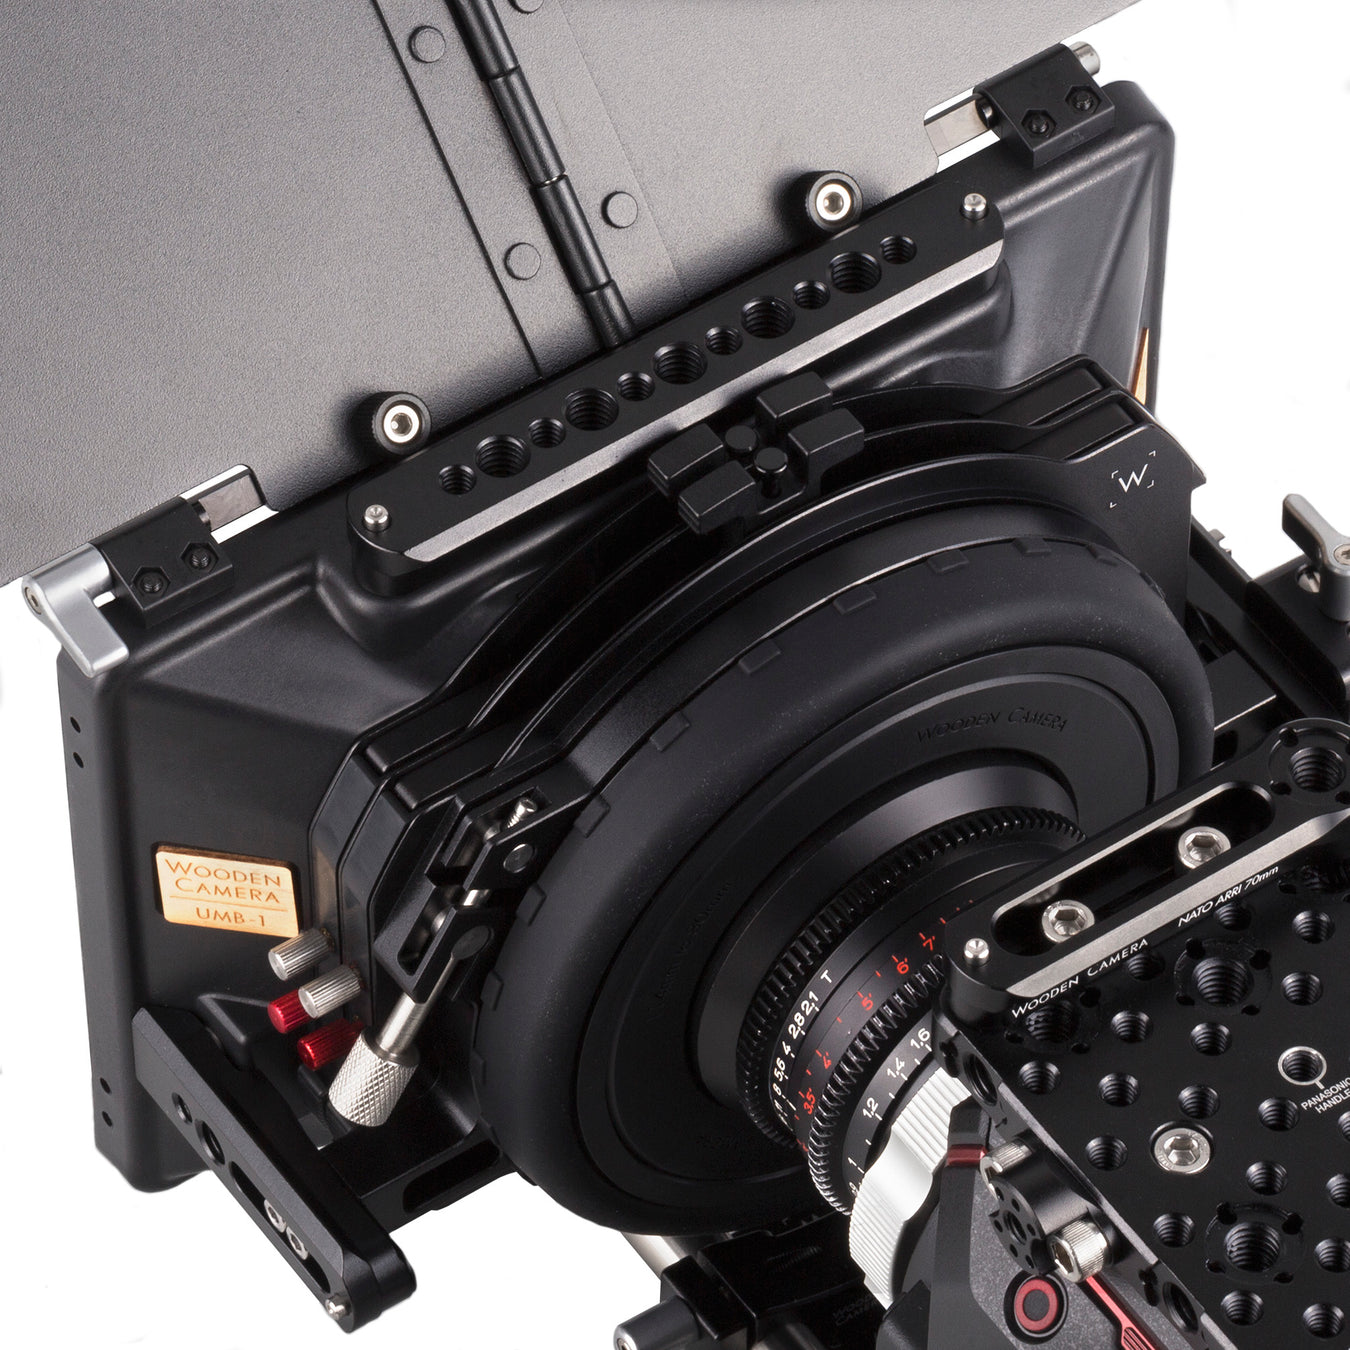 Wooden Camera Professional Accessories Cabinet Parts Diagram And List For Panasonic Cameraparts Model Matteboxes